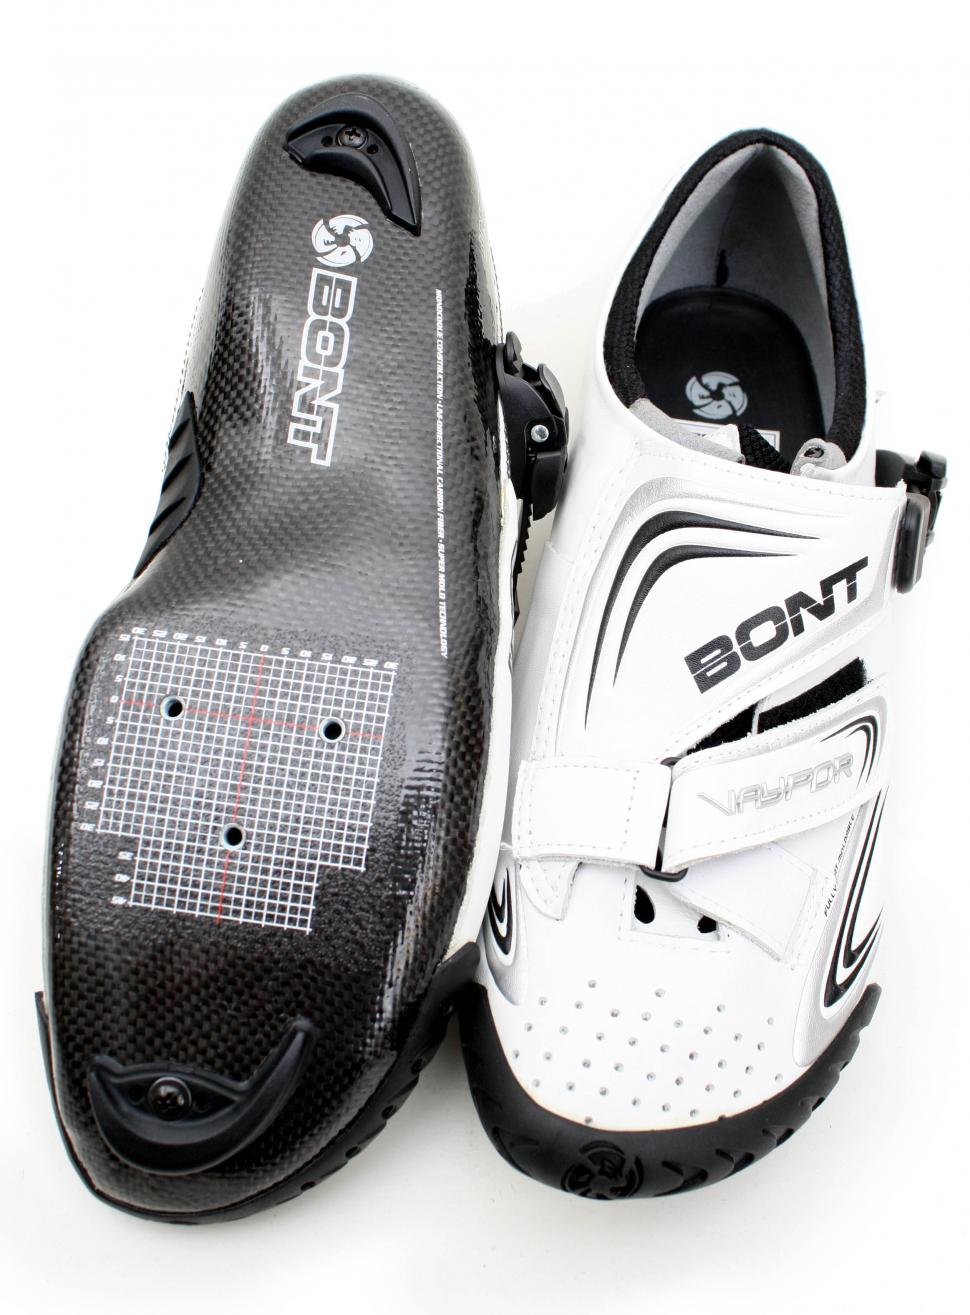 shoes are new Bont CTT-3 Cycling Road Shoe Sizes 7 and 7,5 40,5; 41